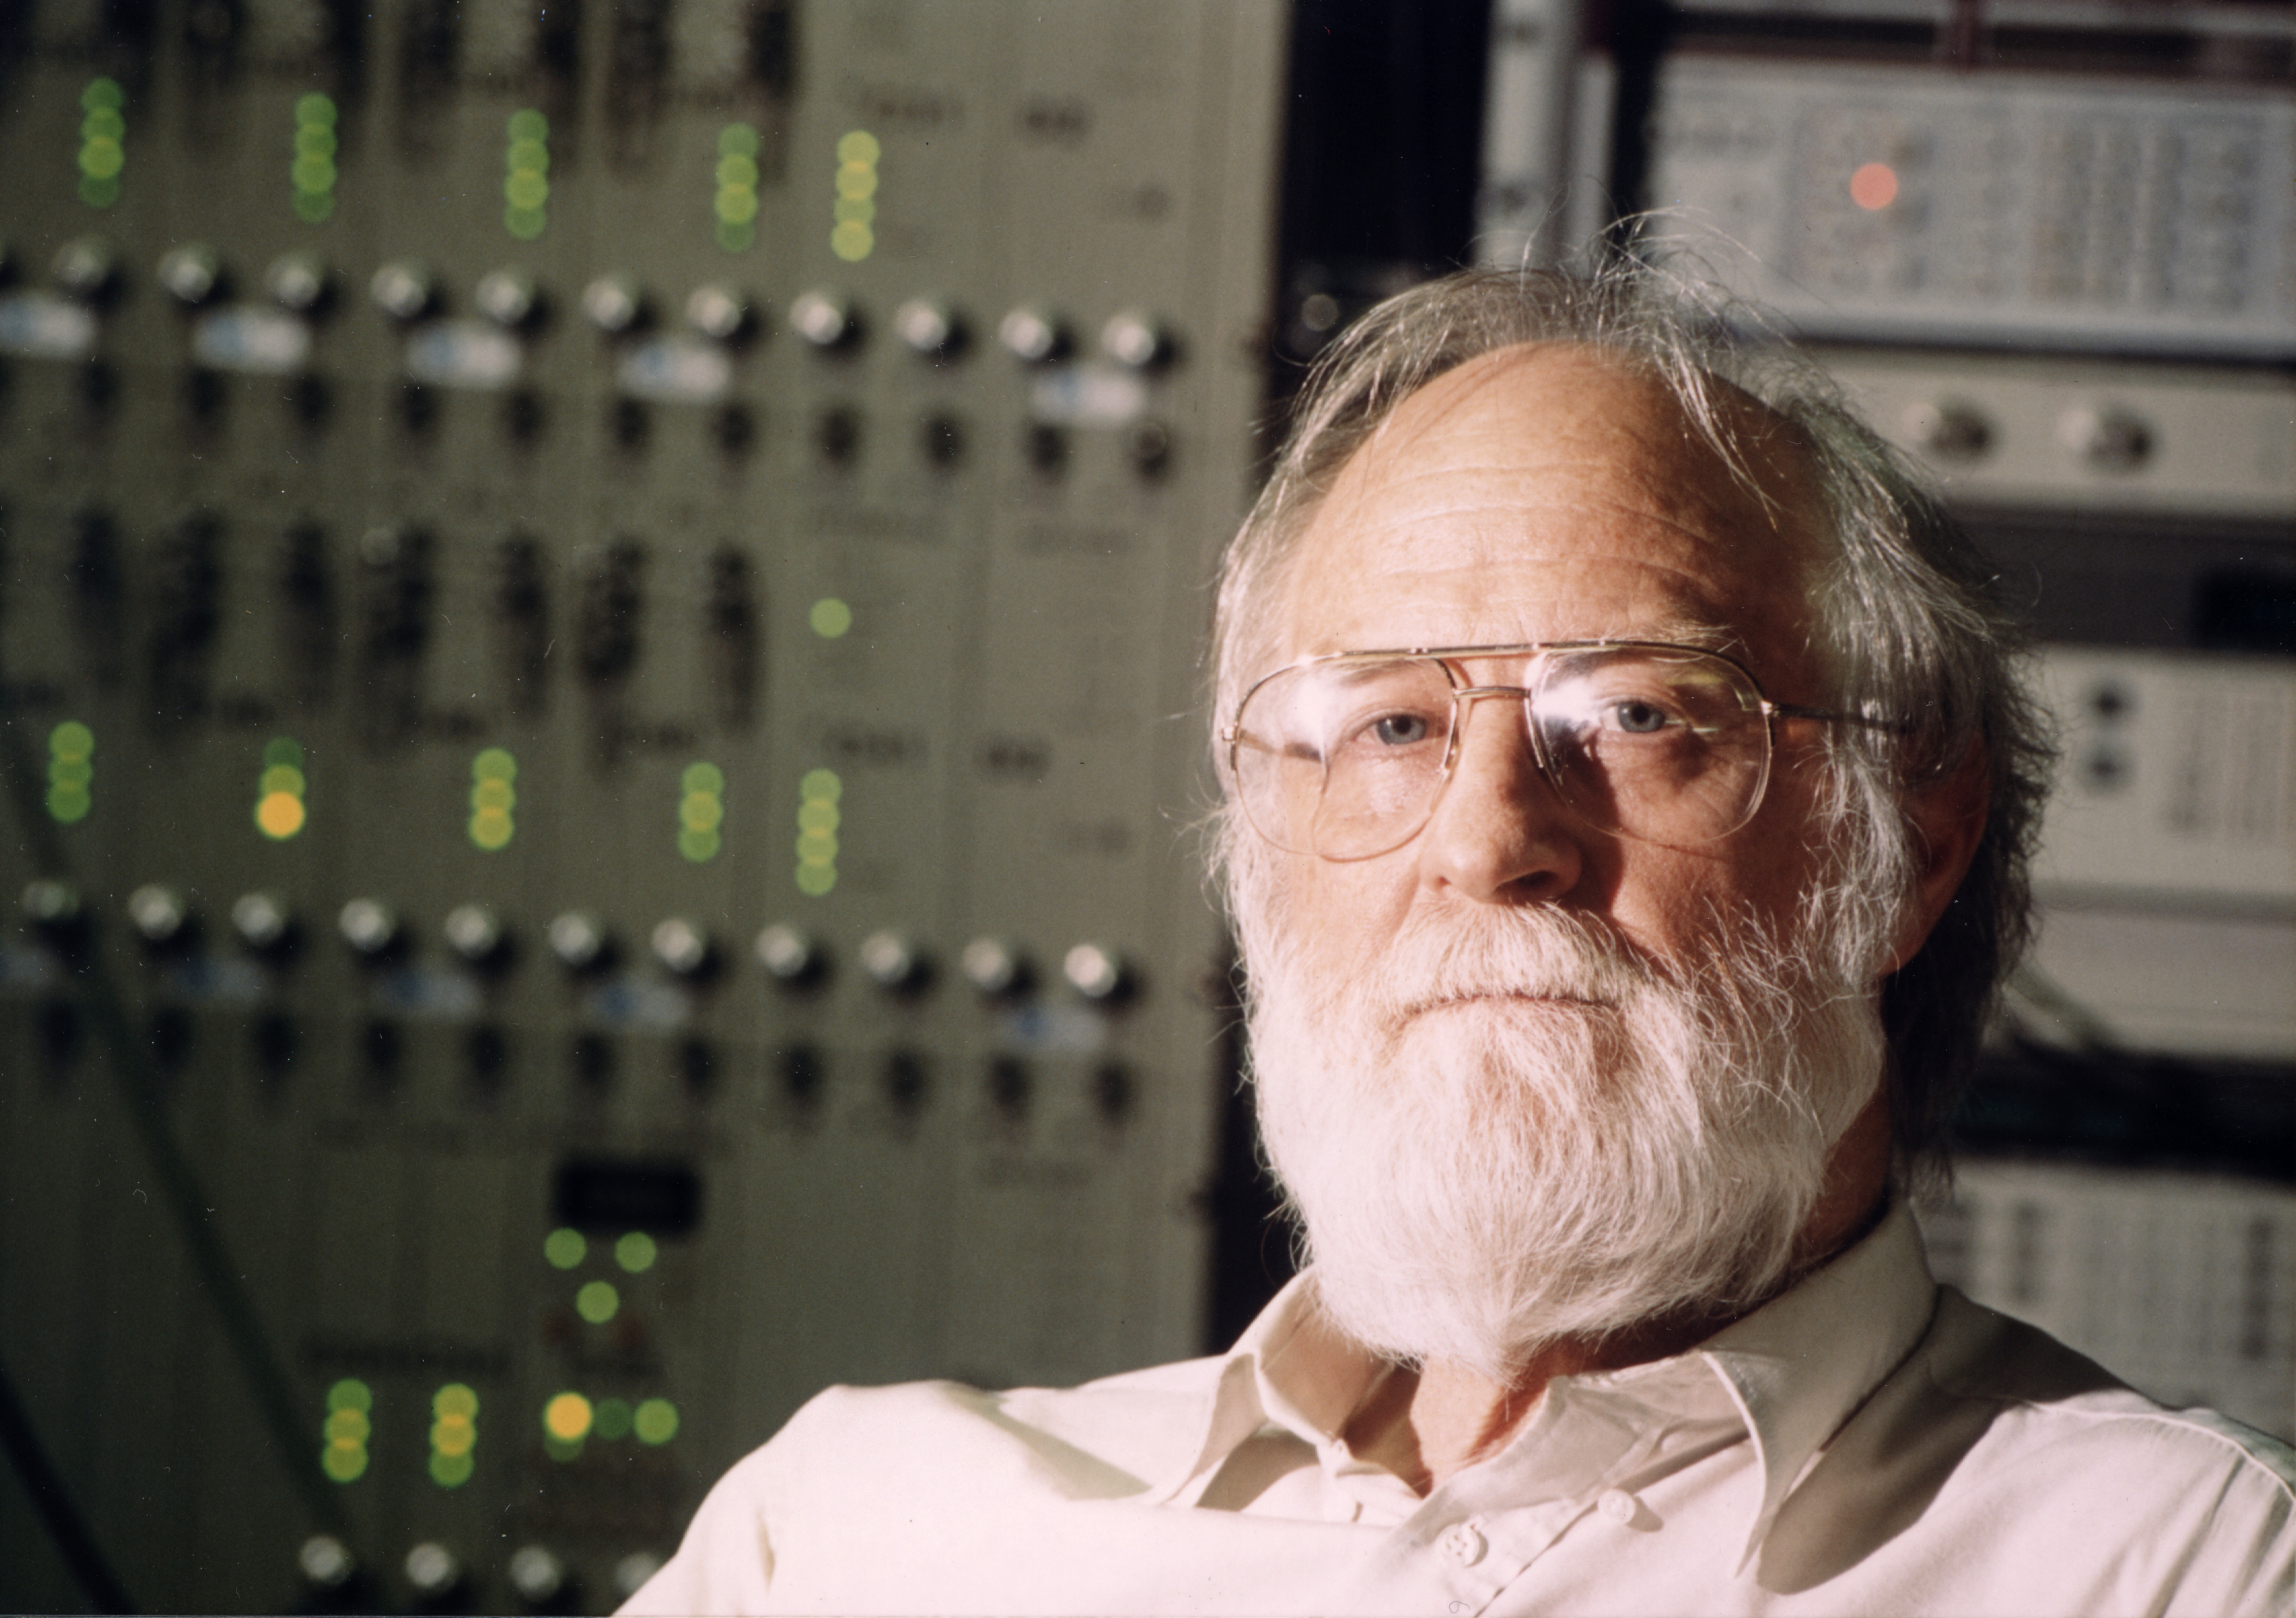 A man with a beard in front of a rack of equipment.